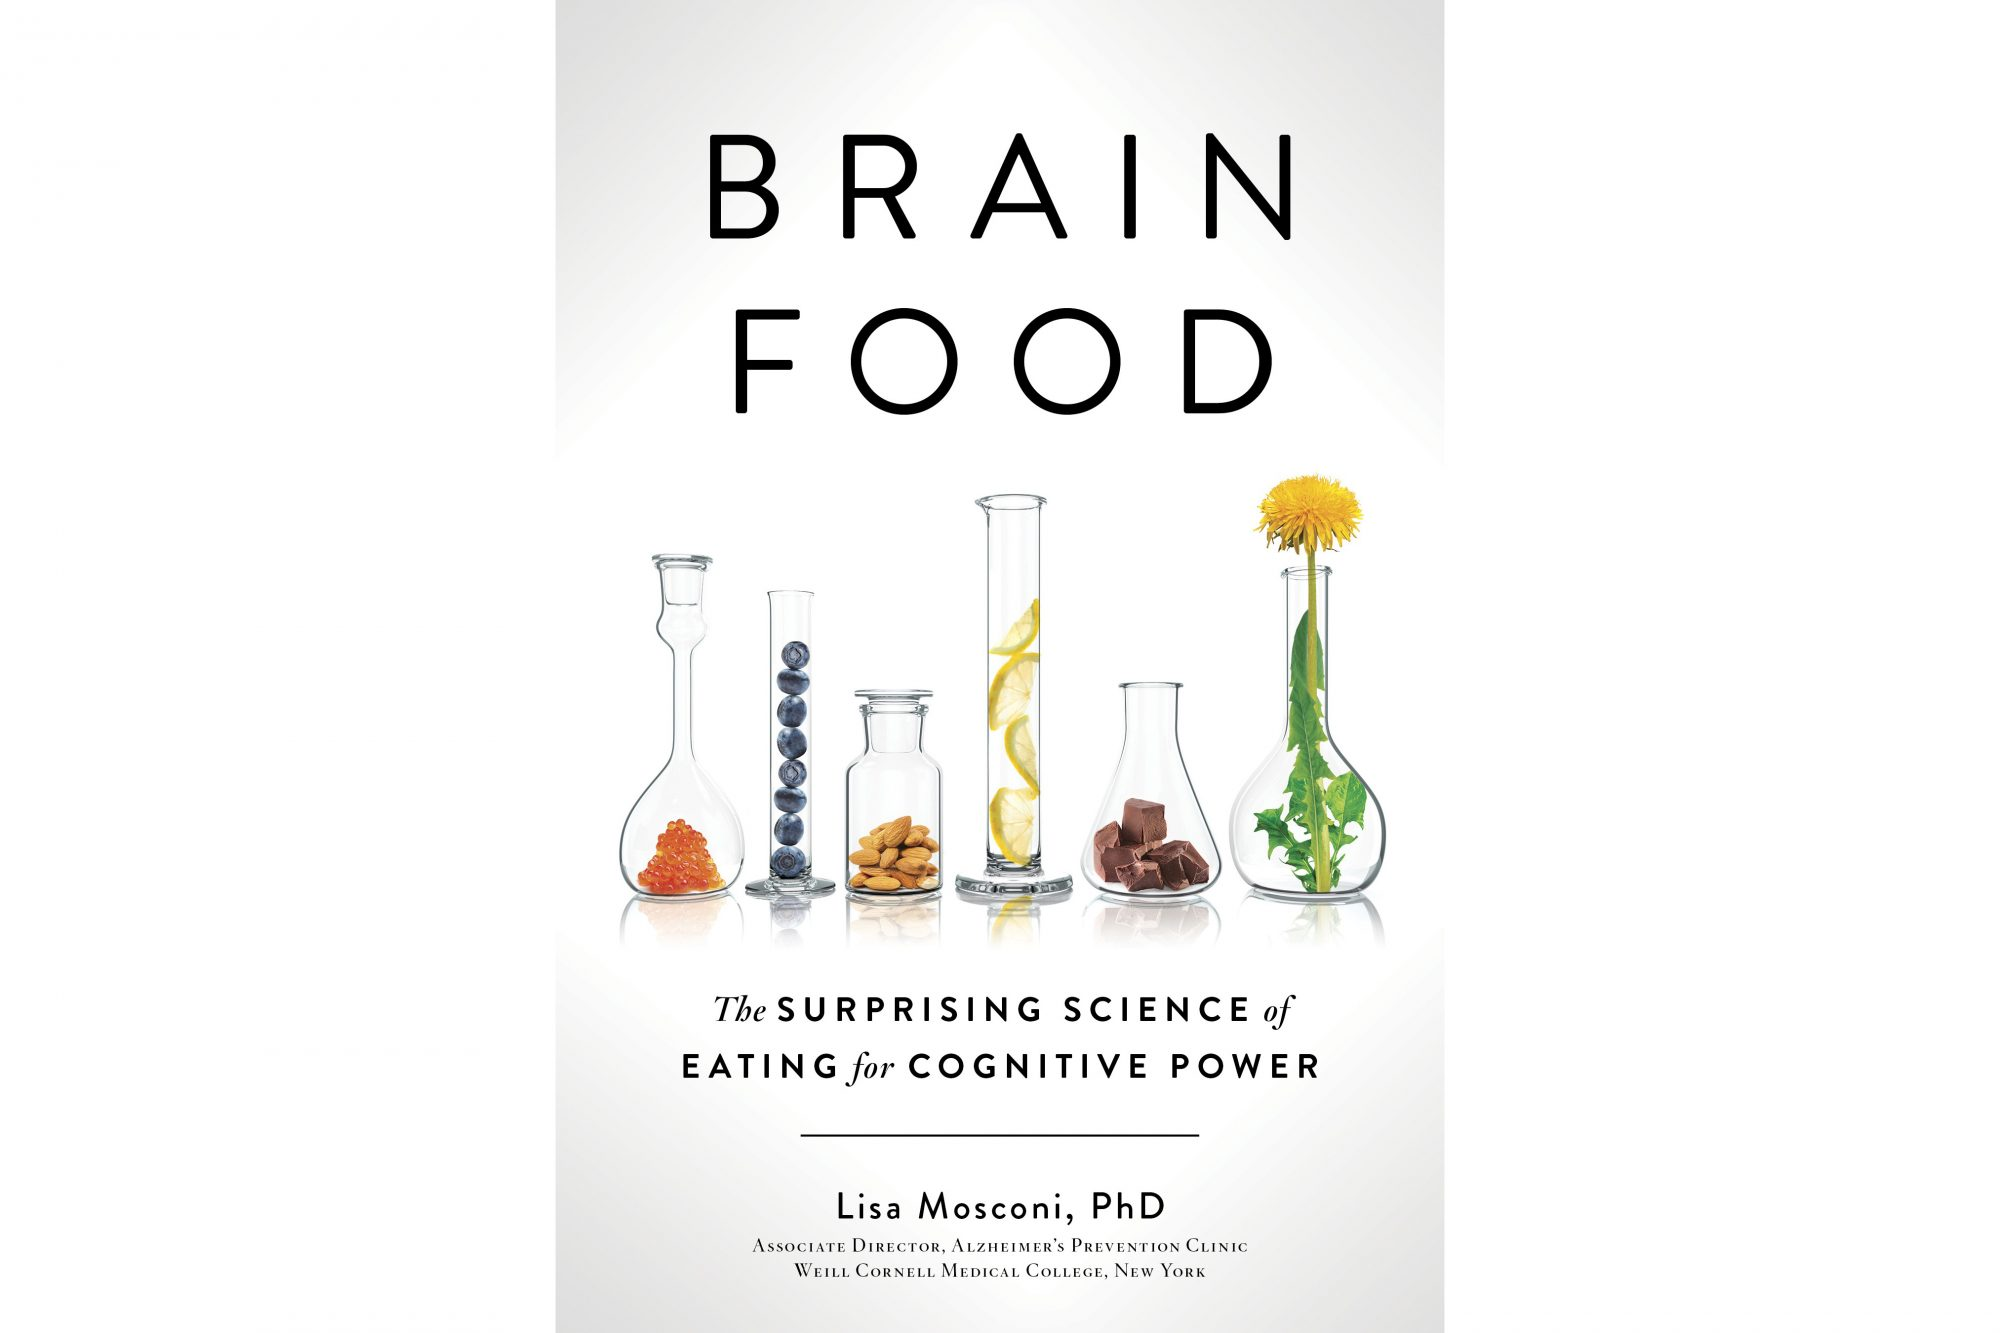 Brain Food, by Lisa Mosconi